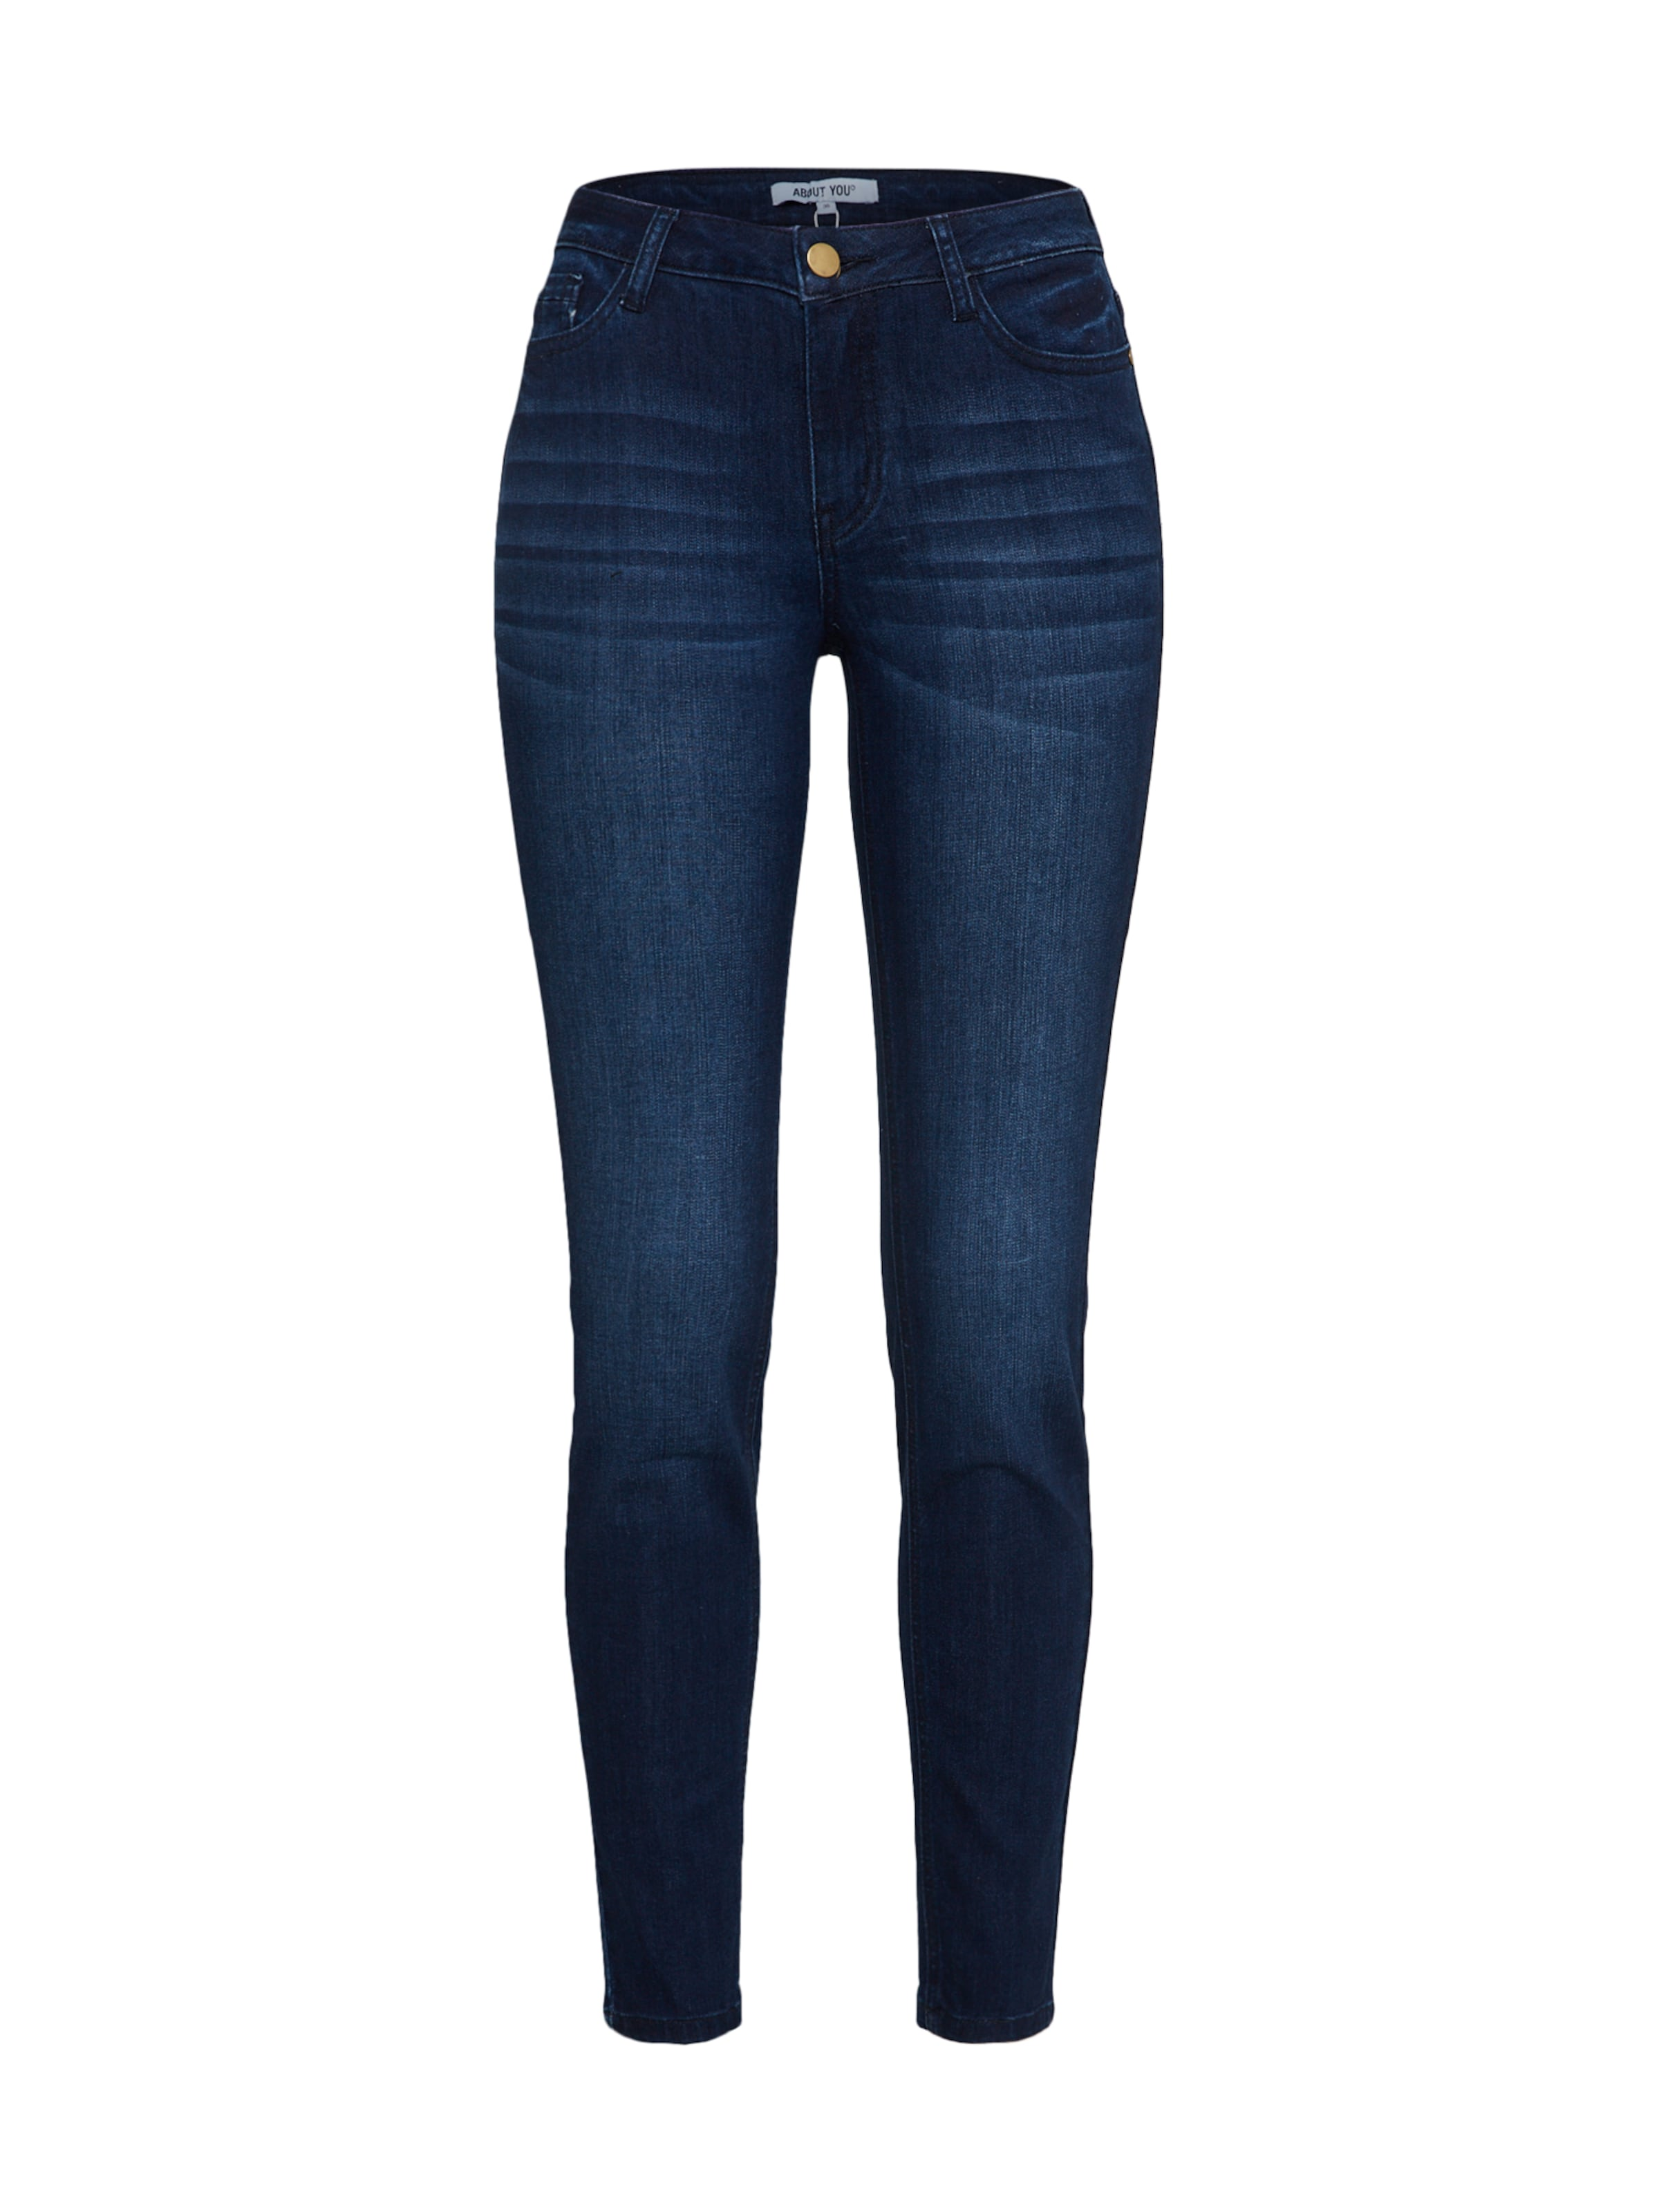 962784cc80eb85 About Denim Blauw In You Jeans  kira  tChsQrxd